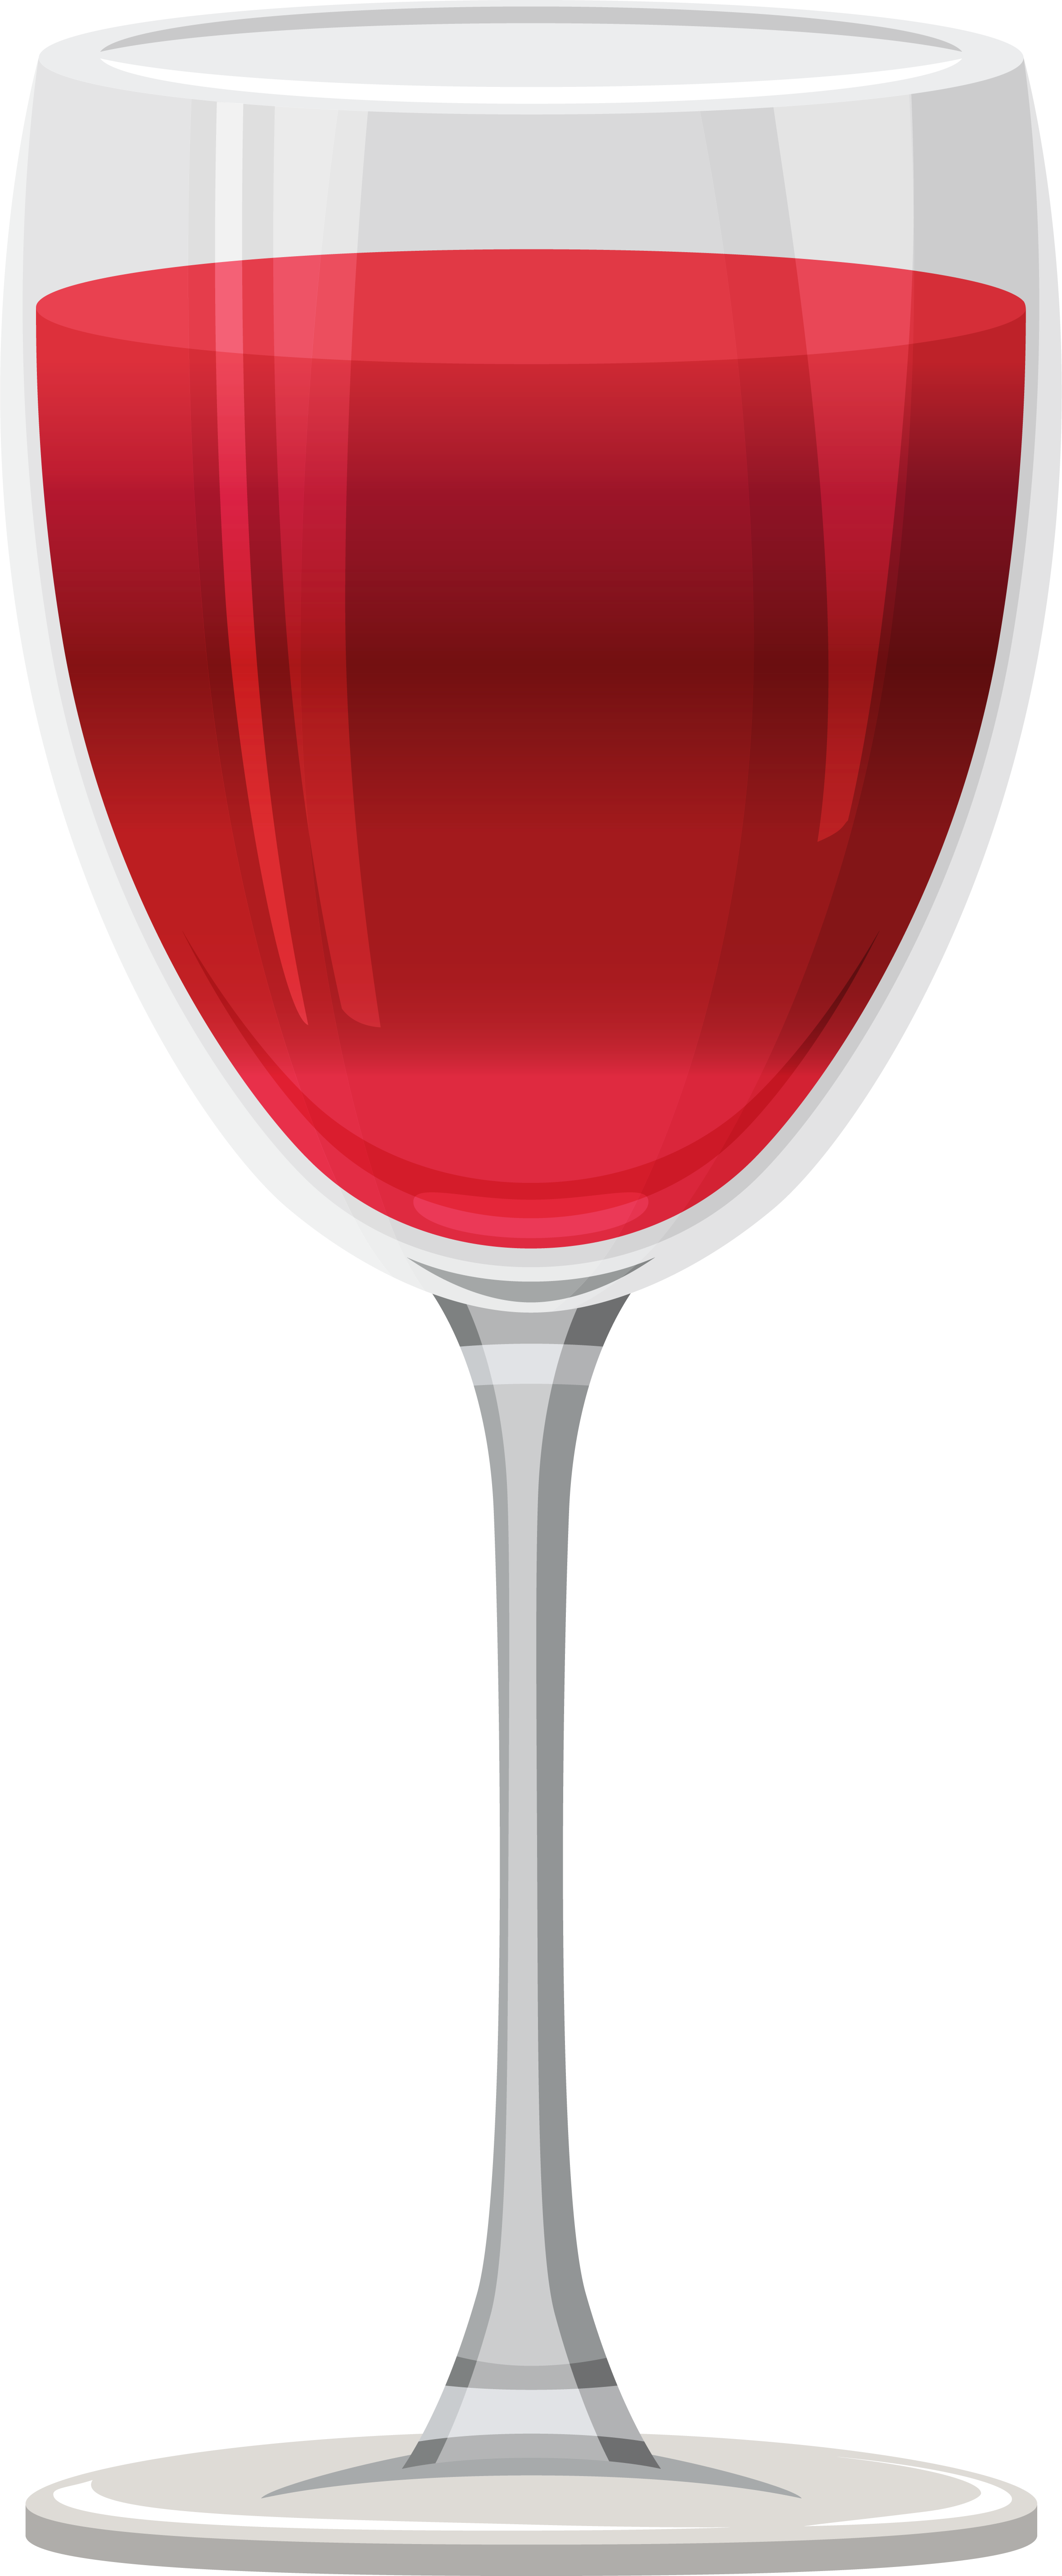 Png images free wineglass. Worm clipart glass